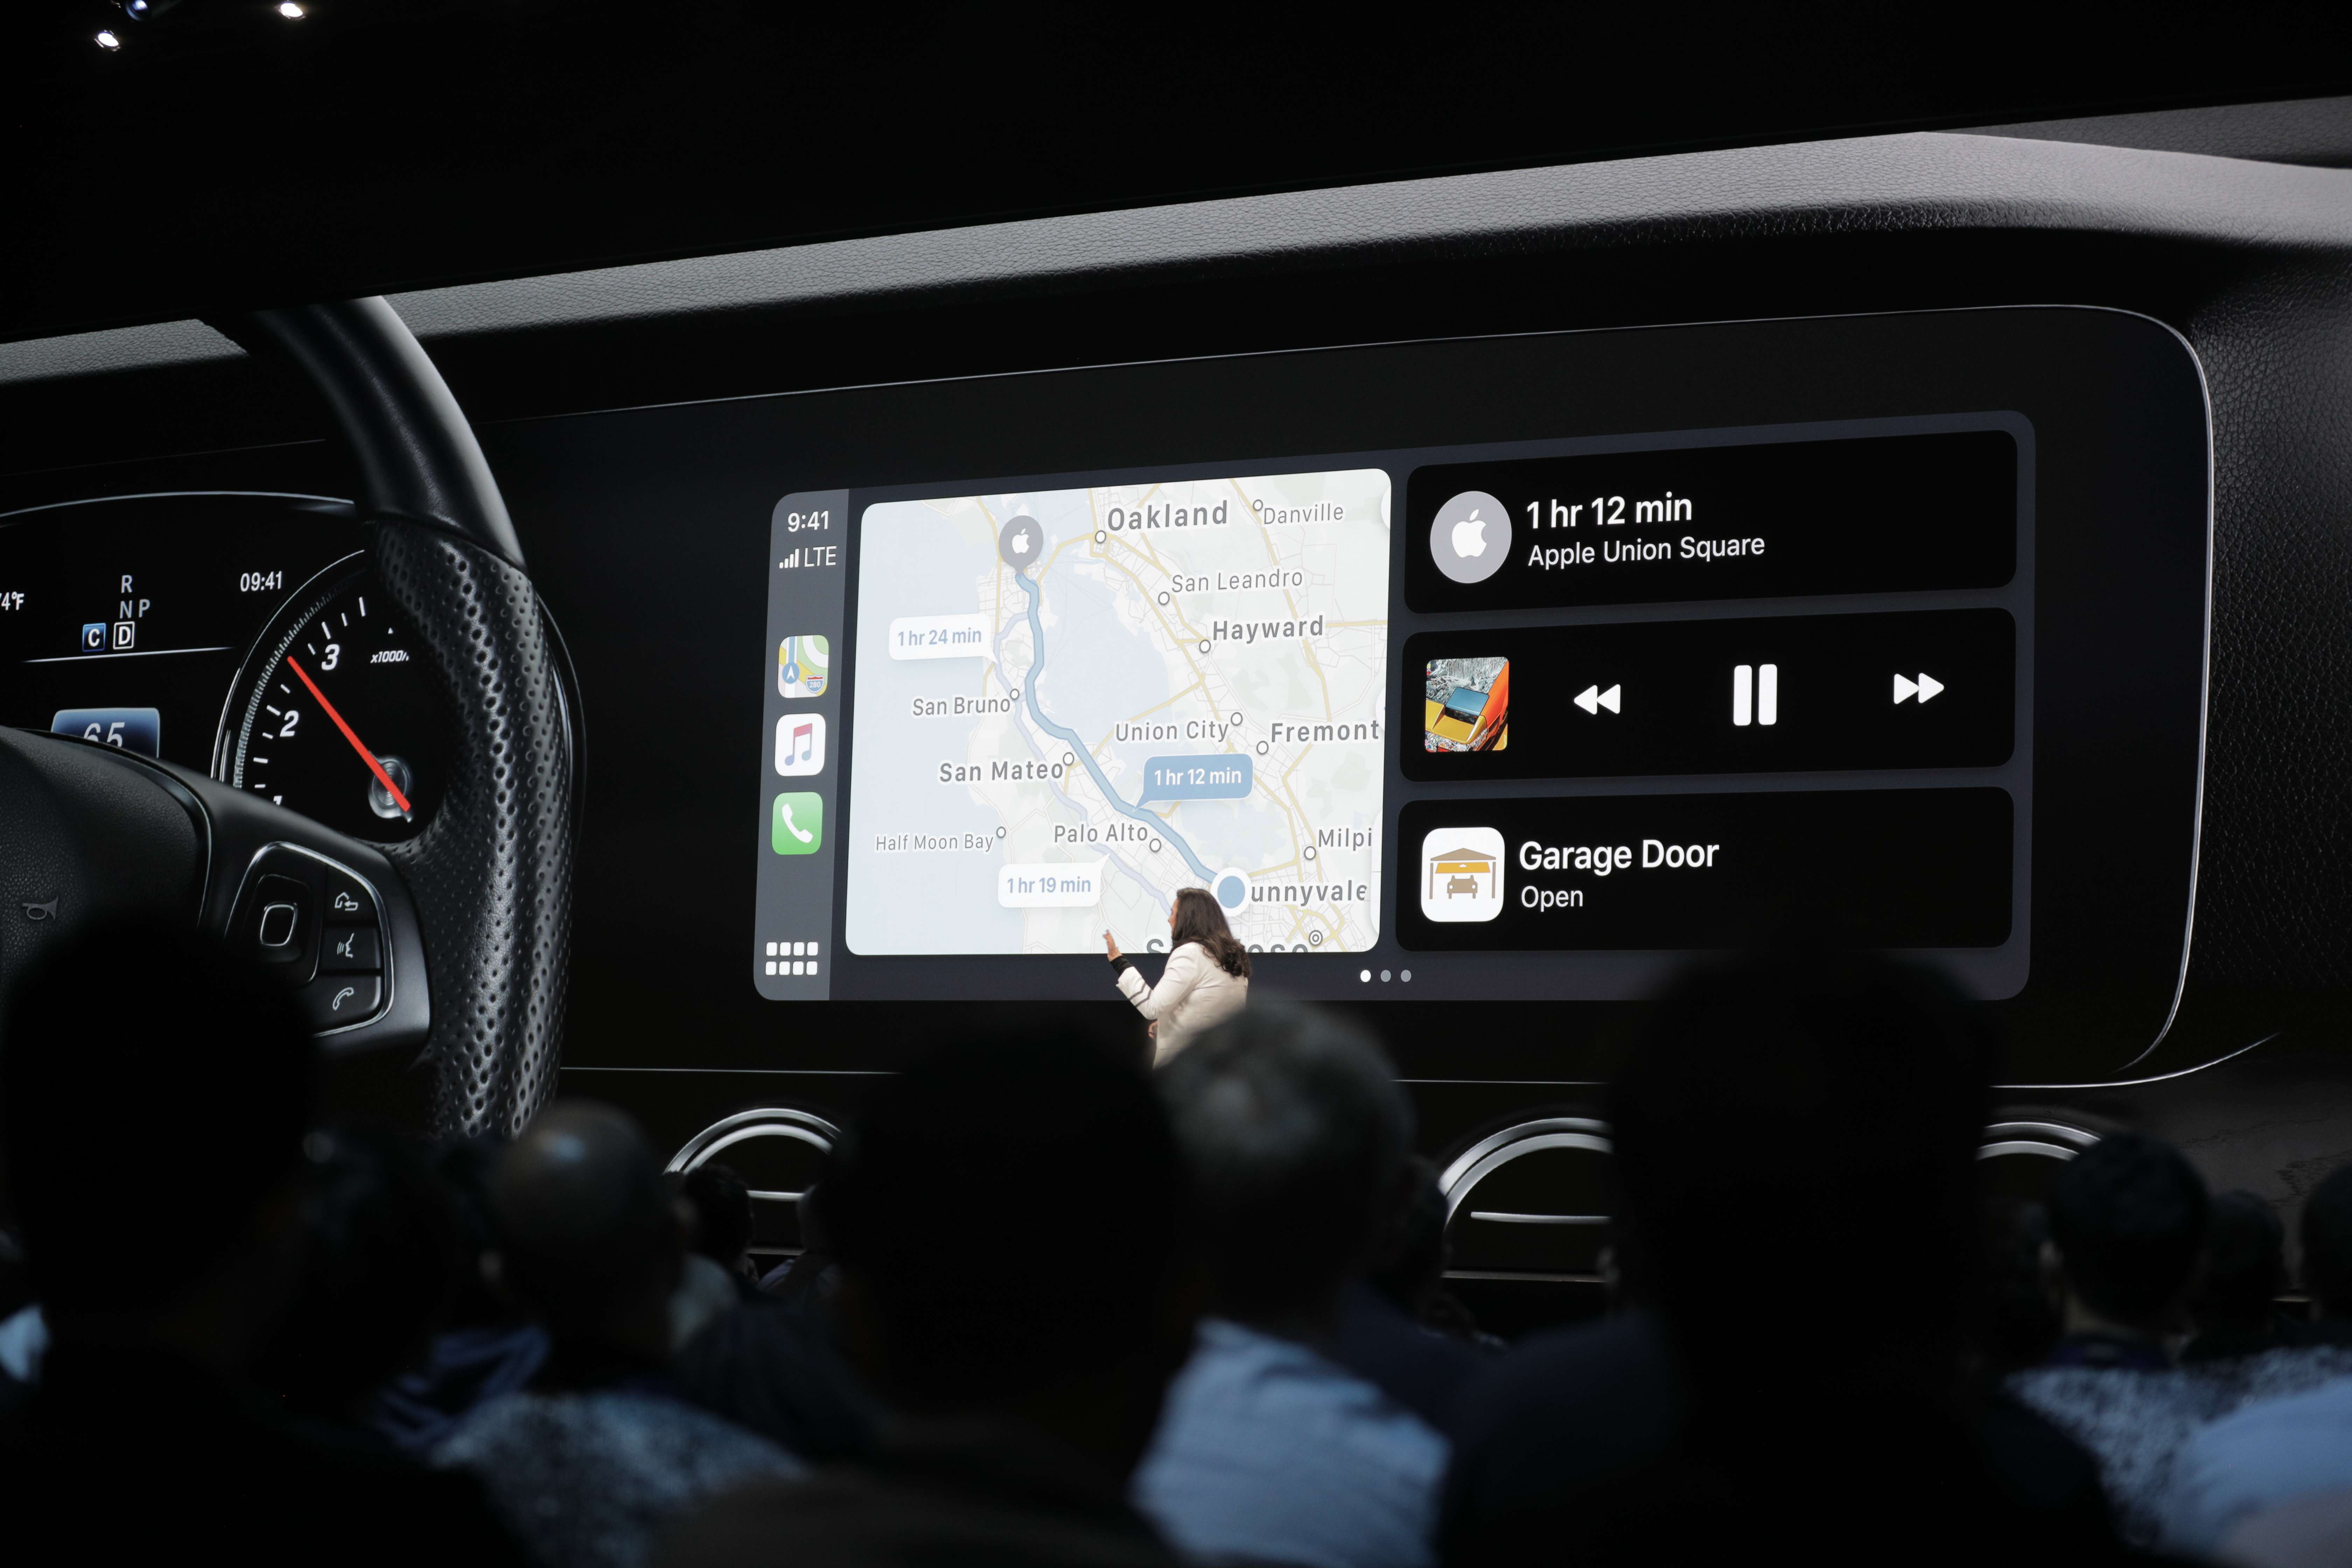 Apple updates CarPlay with new home screen and Siri Suggestions